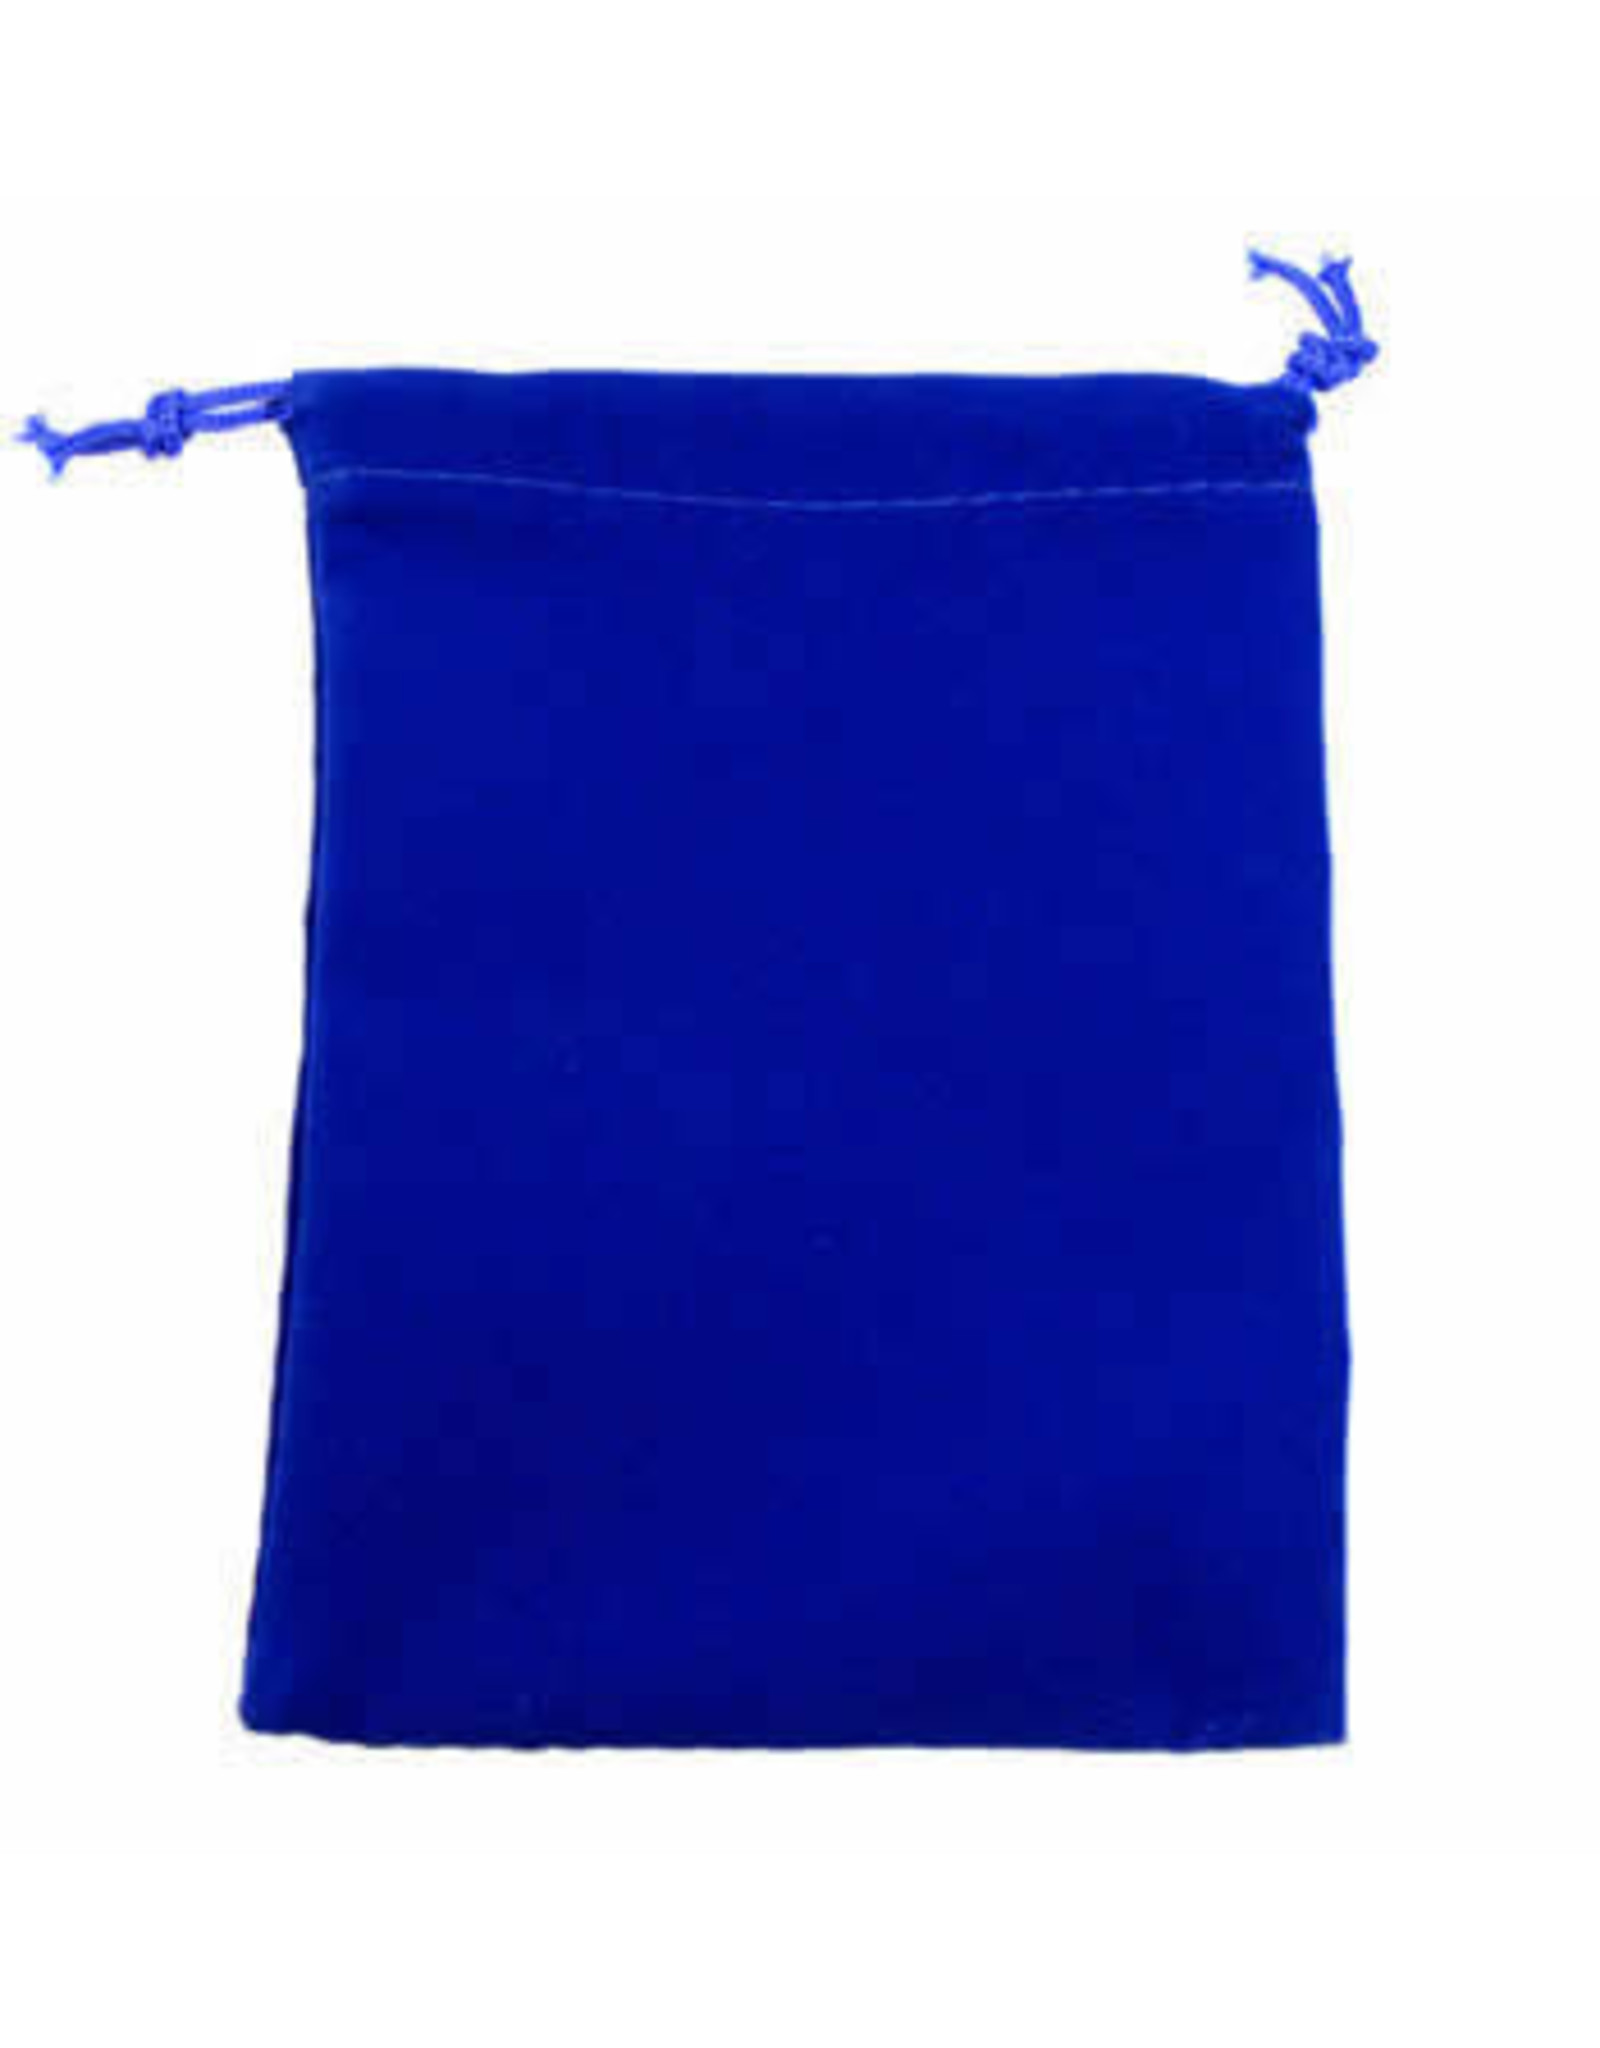 Chessex Dice Bag Suede Small Royal Blue